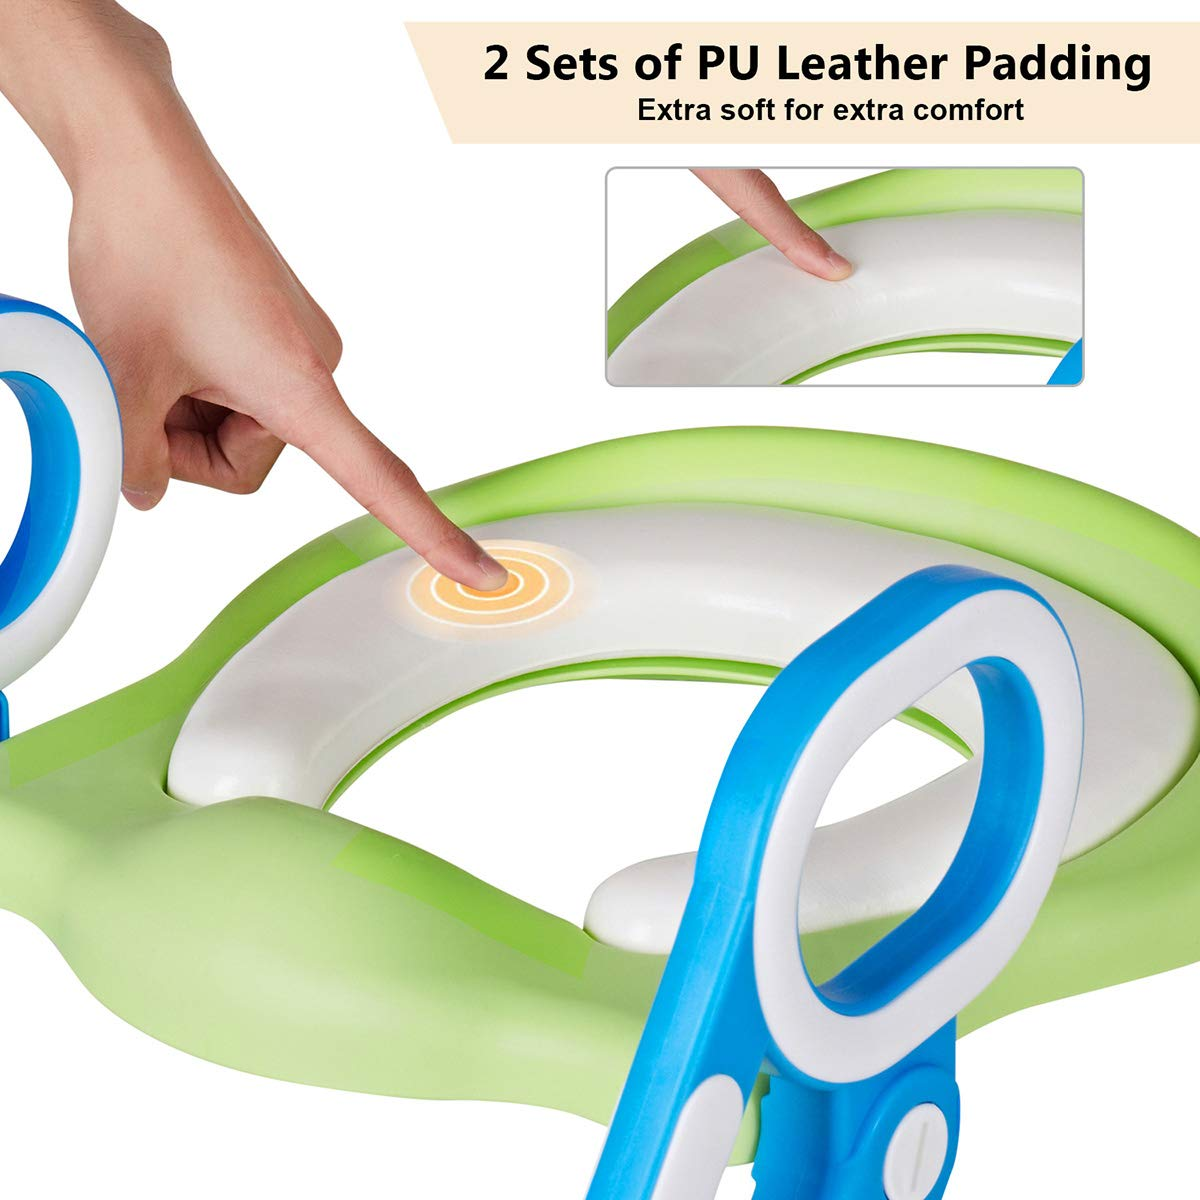 VETOMILE Baby Potty Toilet Trainer Seat for Children Kids Toddles with Adjustable Sturdy Non-Slip Step Stool Ladder and 2 PU Leather Replaceable Soft Padding Suitable for O V U Shaped-Toilets by VETOMILE (Image #5)